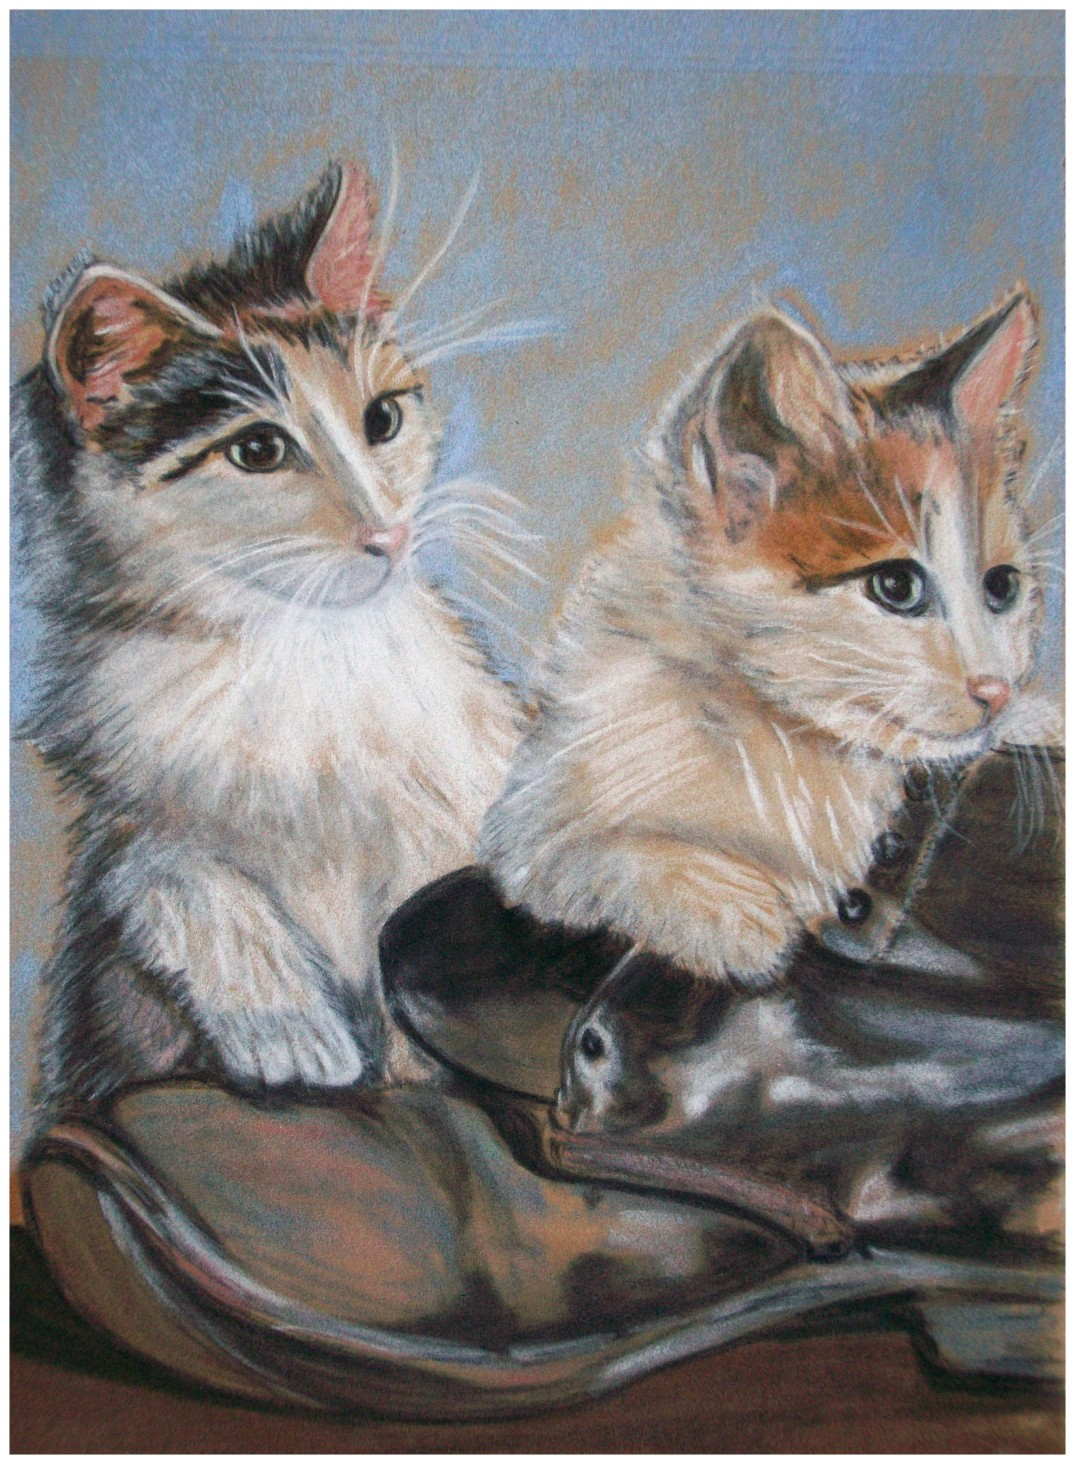 Playful Kittens Modified With Border